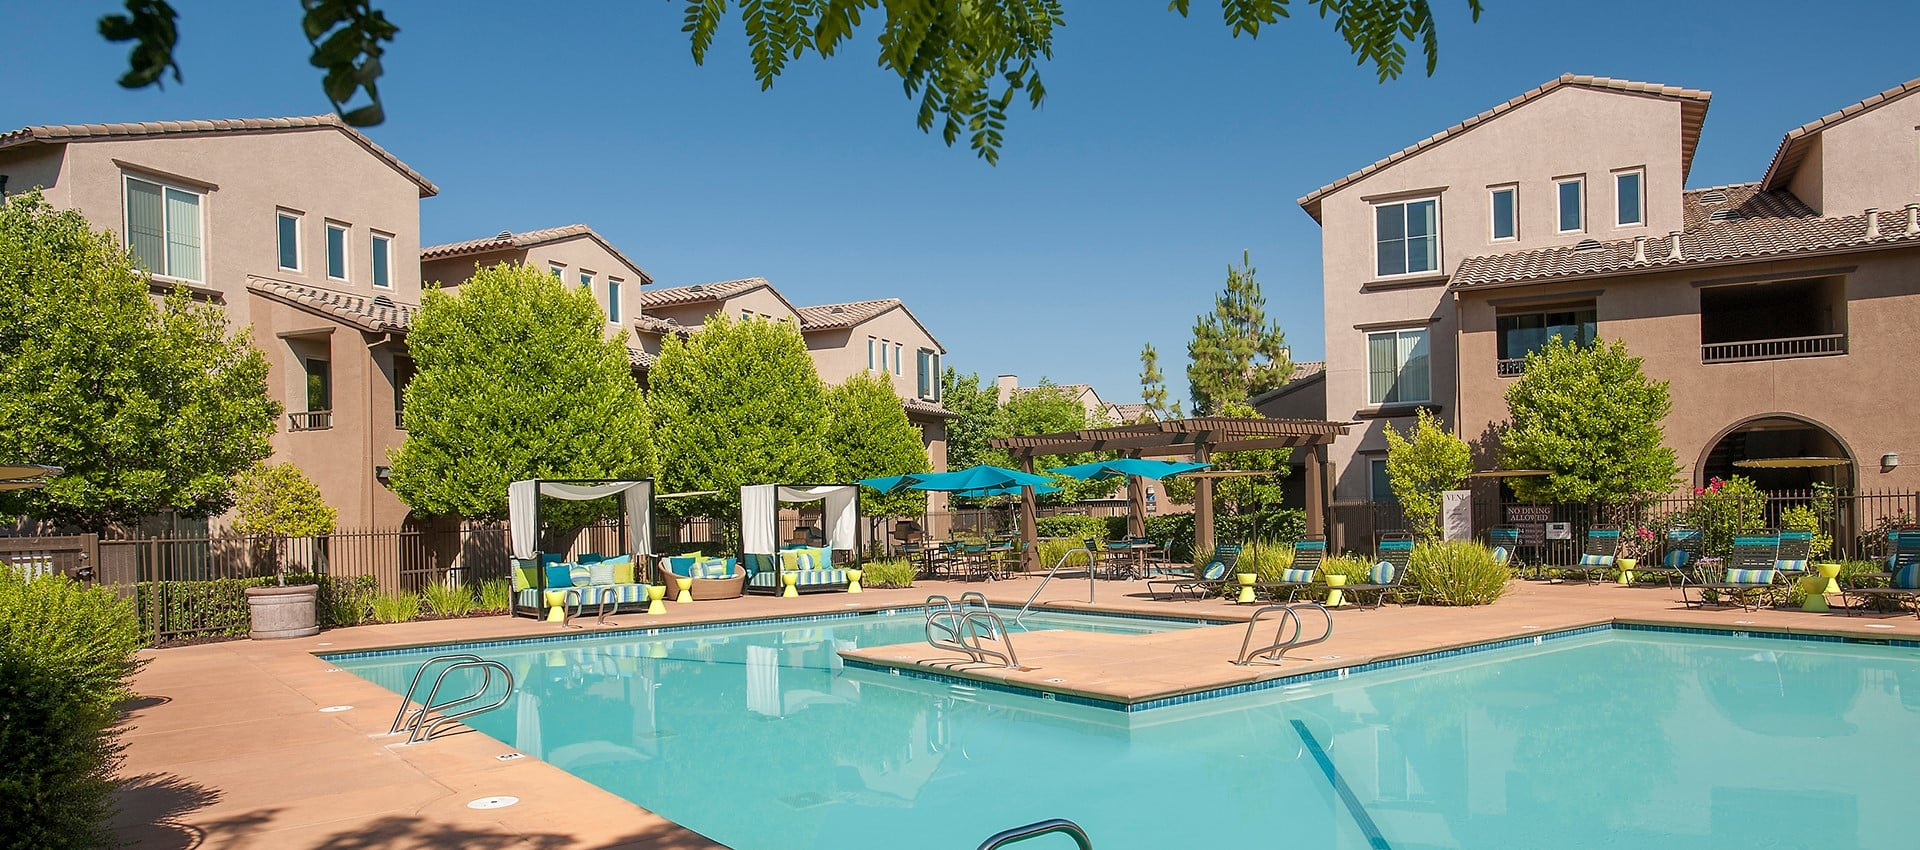 State-of-the-art pool at Venu at Galleria Condominium Rentals in Roseville, California